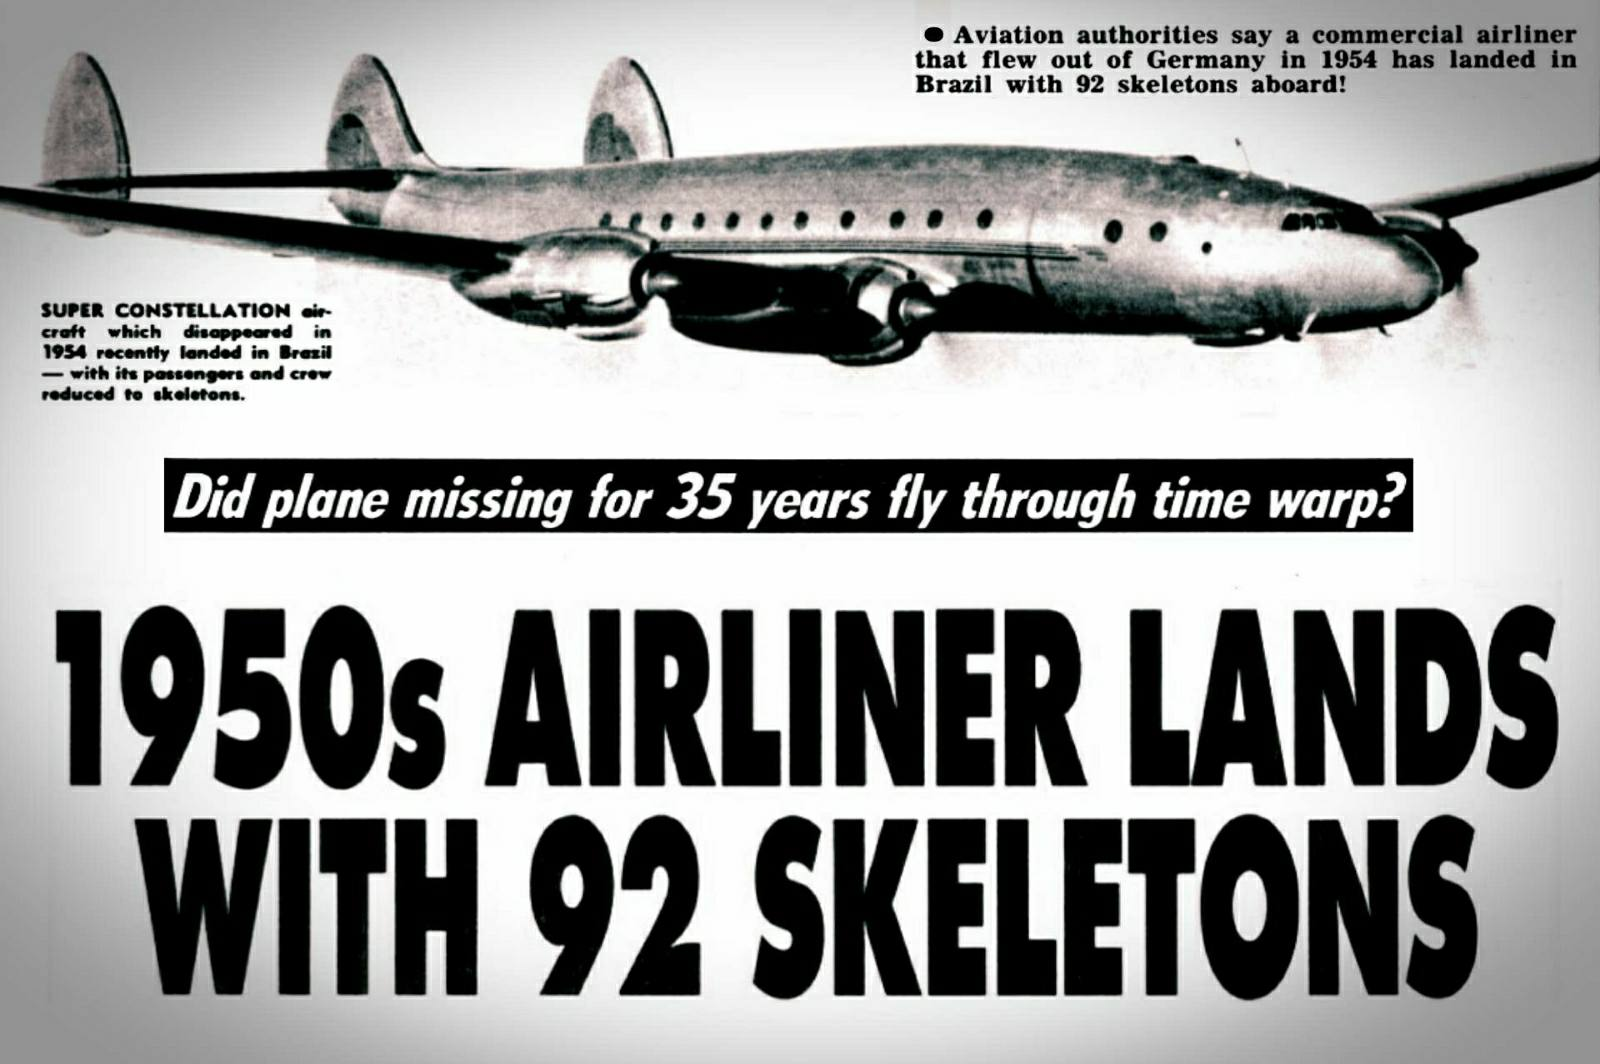 The most mysterious disappearance of the aircraft